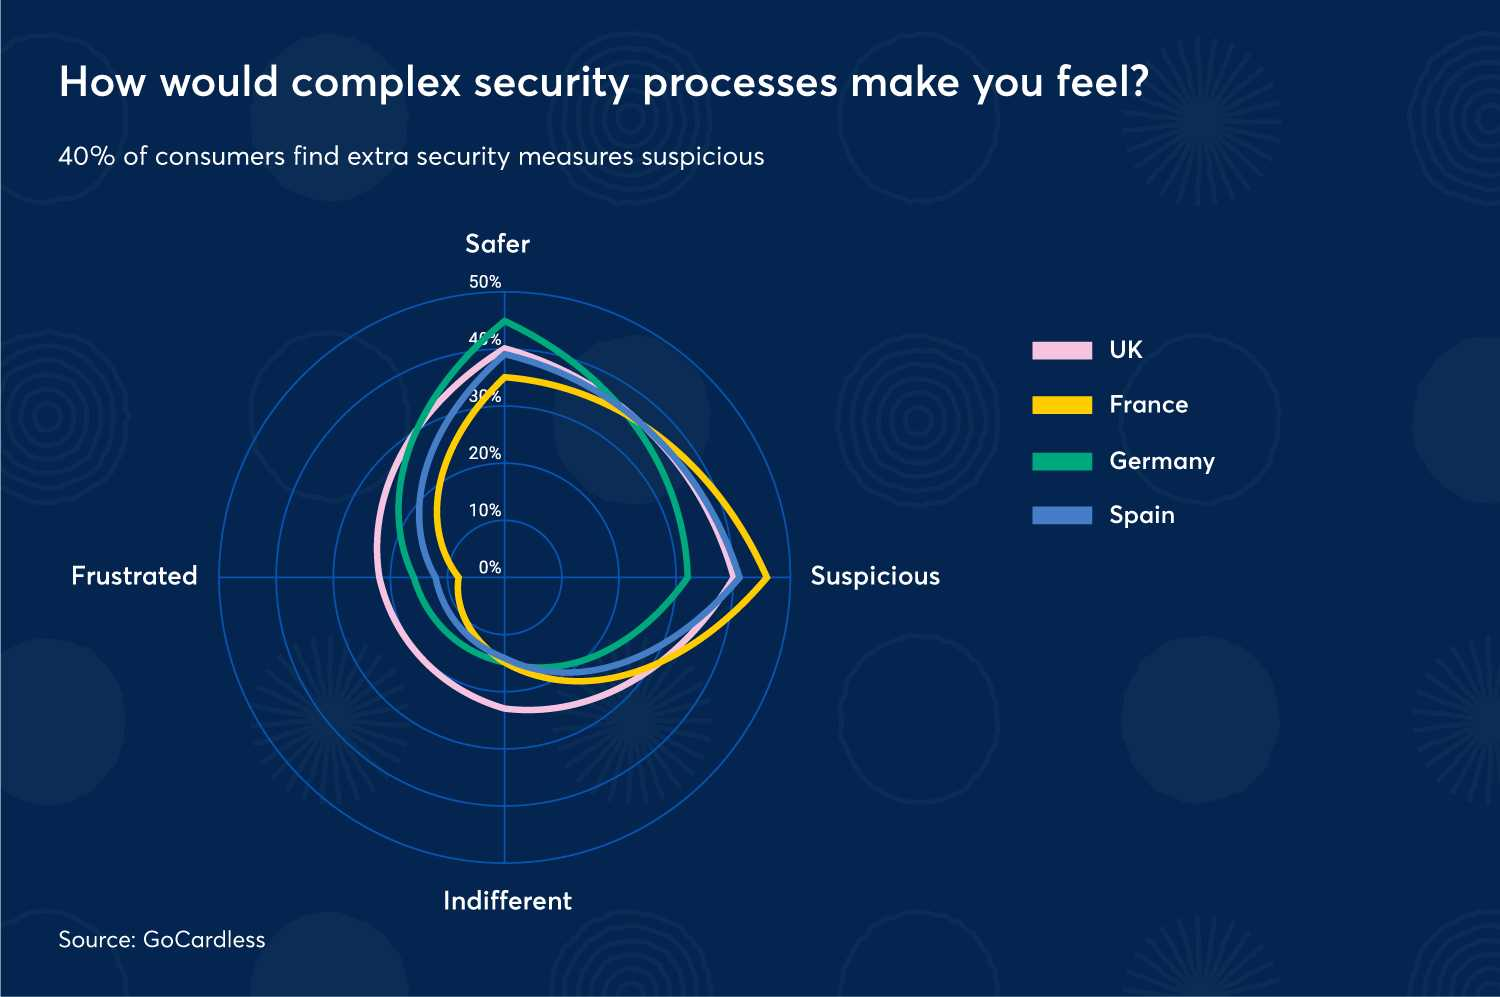 How would complex security processes make you feel?